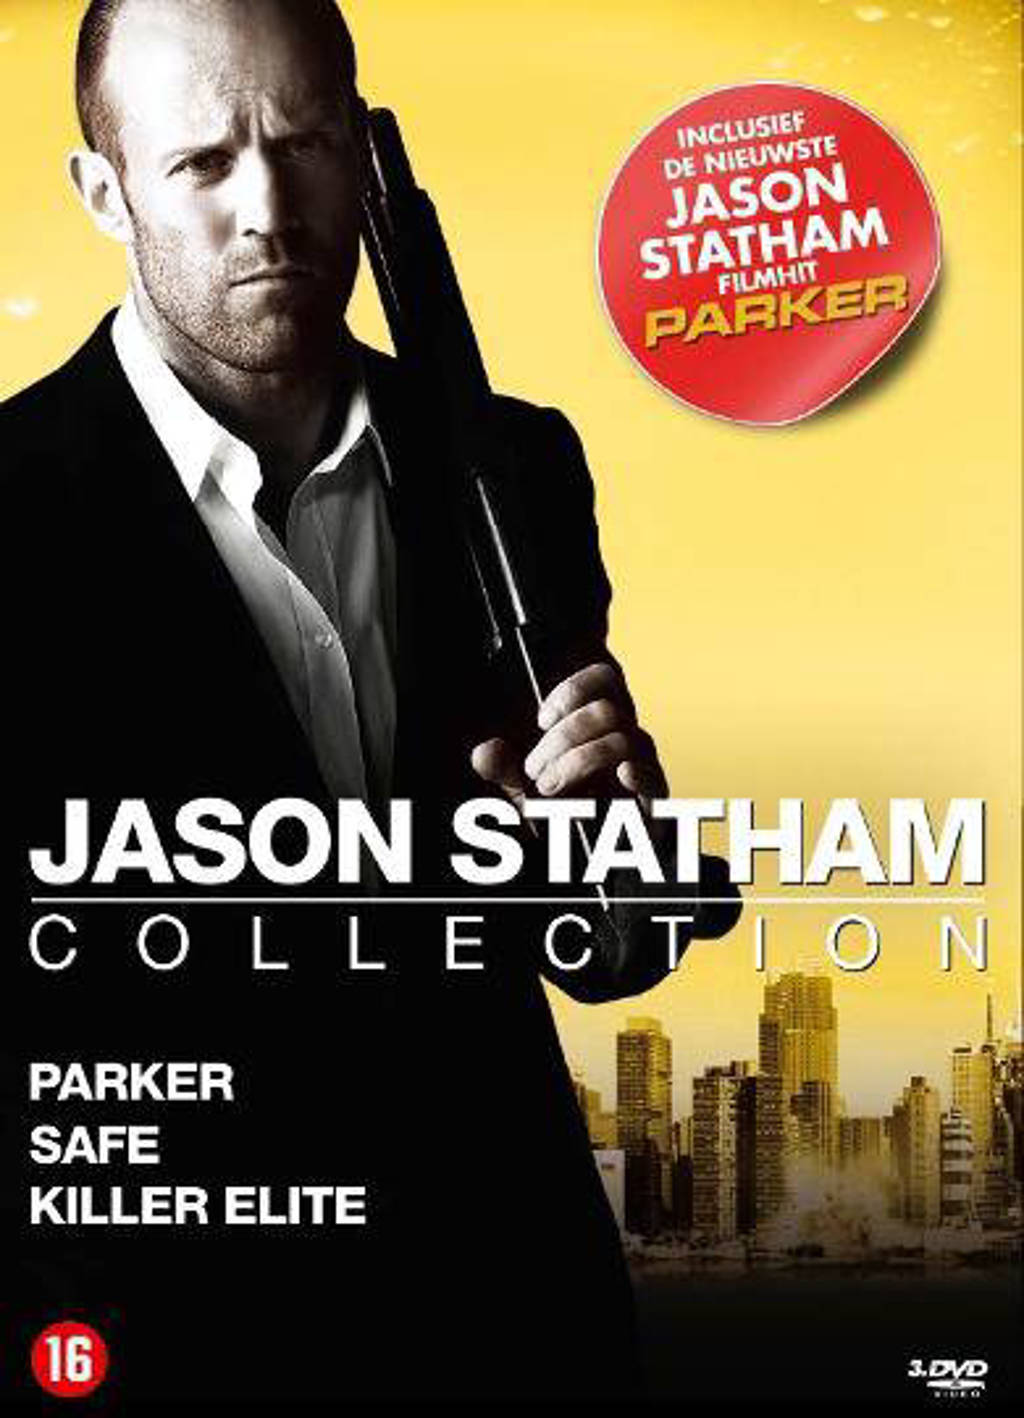 Jason Statham collection 2 (DVD)